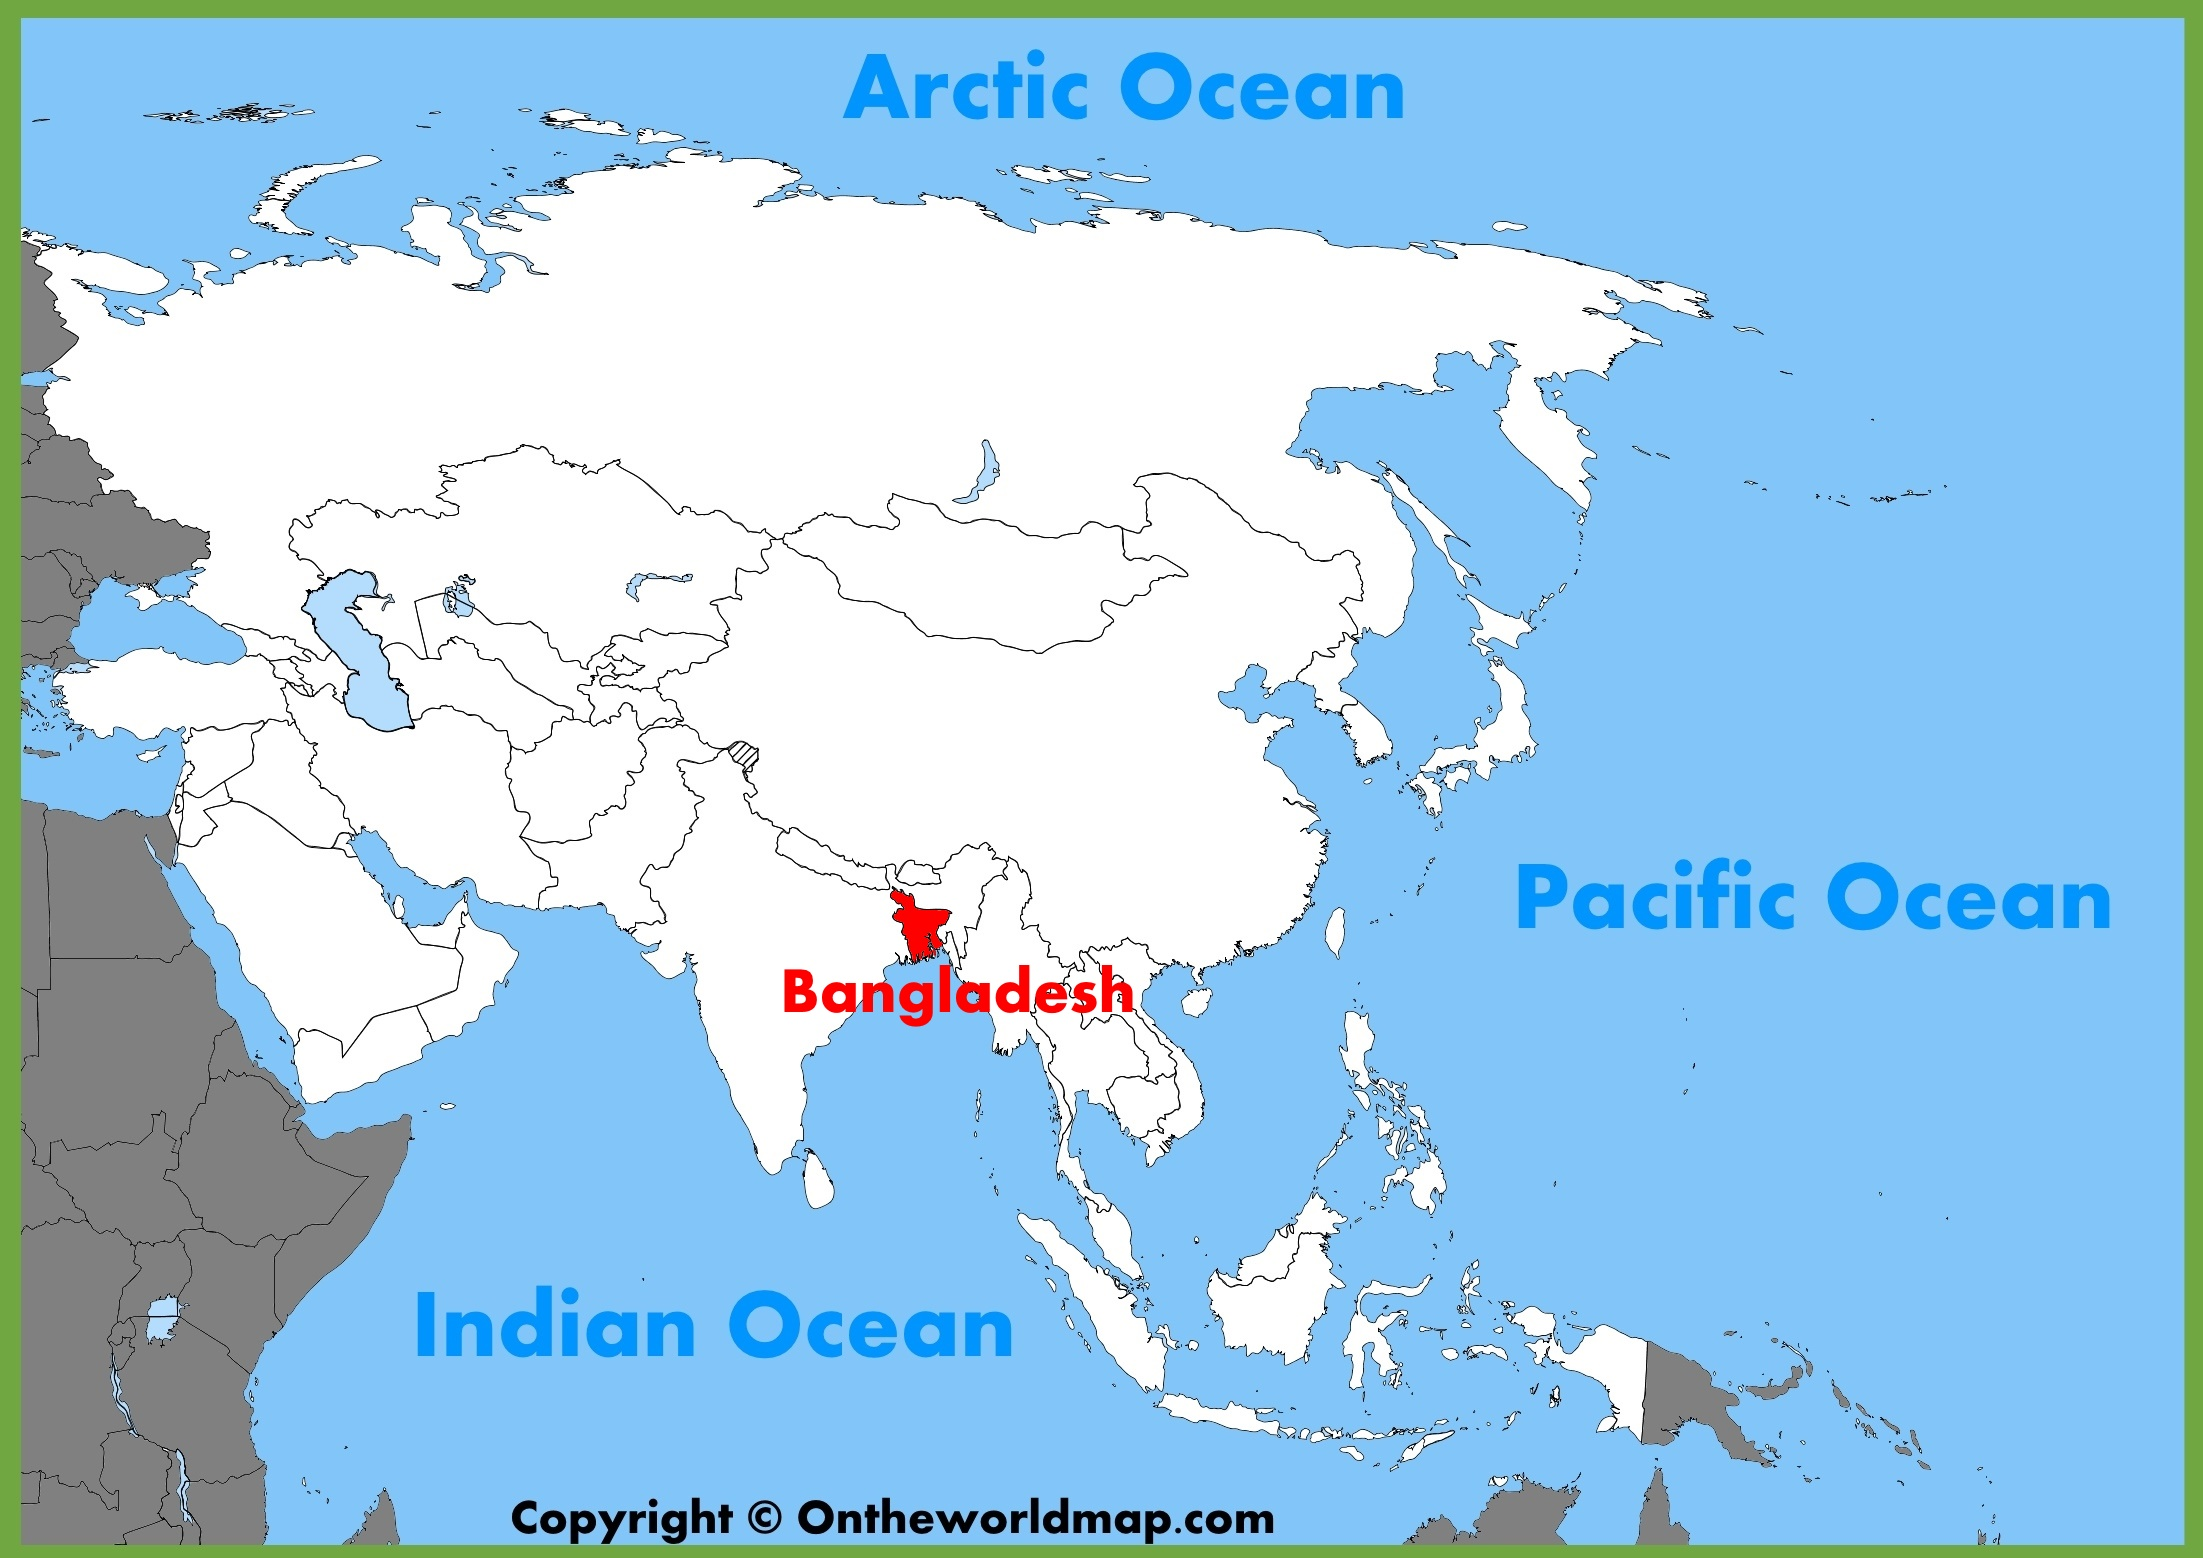 Bangladesh location on the Asia map